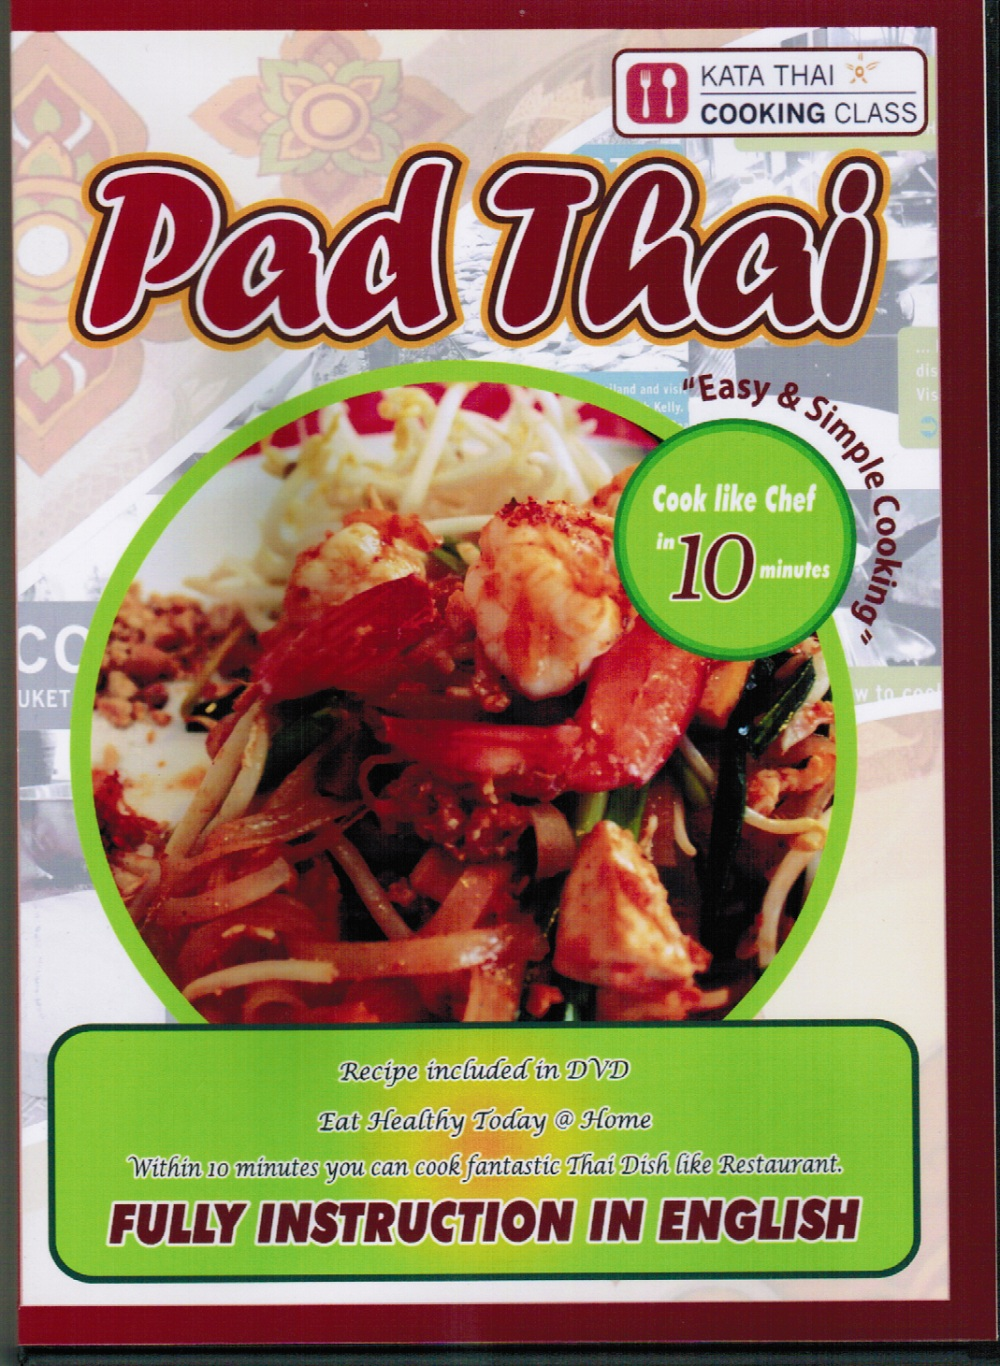 Newscooking dvd kata thai cooking class phuket how to cook pad thai forumfinder Choice Image